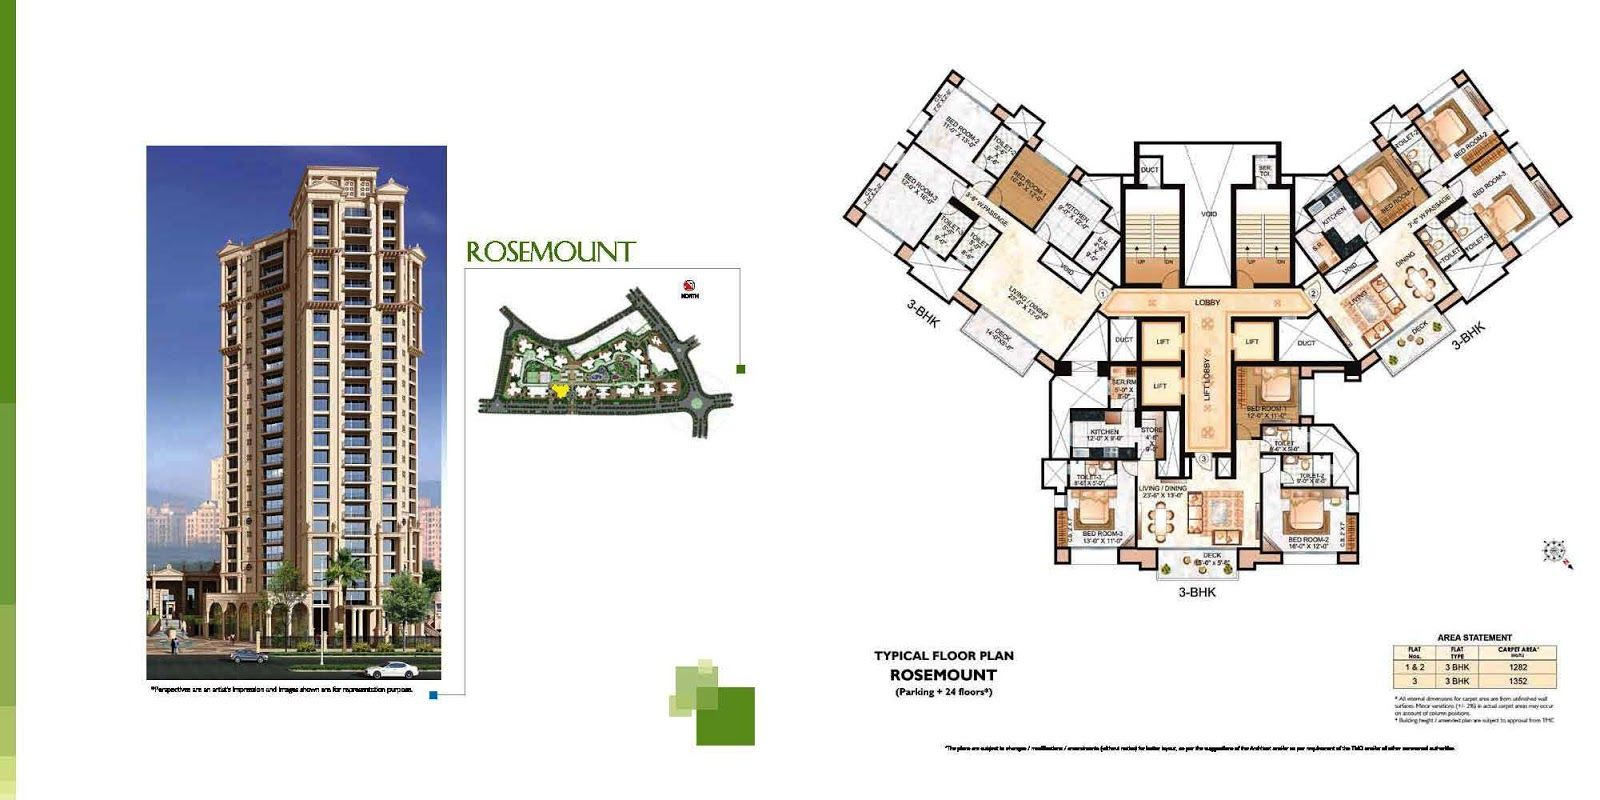 Gemini Building Hiranandani Meadows Thane 2 5bhk For Sale At Higher Floor Flats For Sale 3bhk Properties For Sale Floor Plan Layout Apartments For Sale Enclave